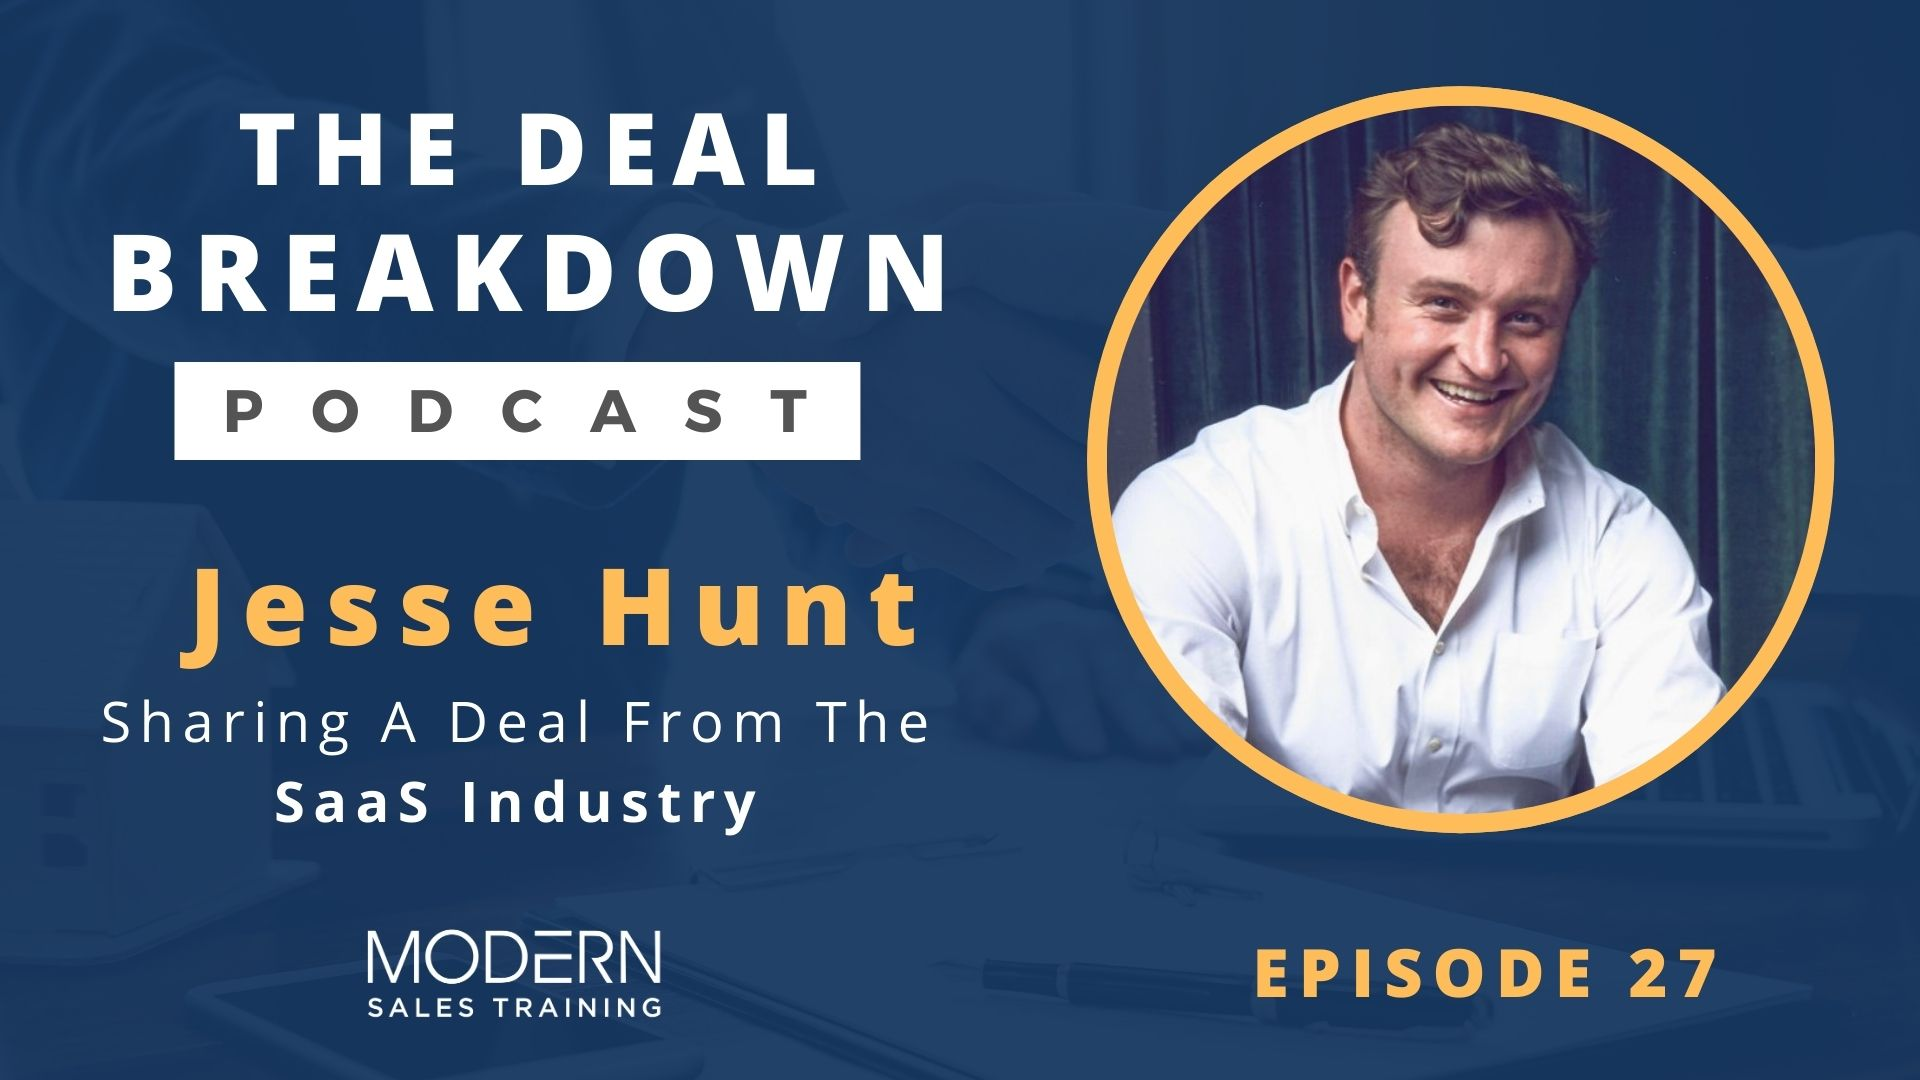 The-Deal-Breakdown-Podcast-Modern-Sales-Training-Jesse Hunt